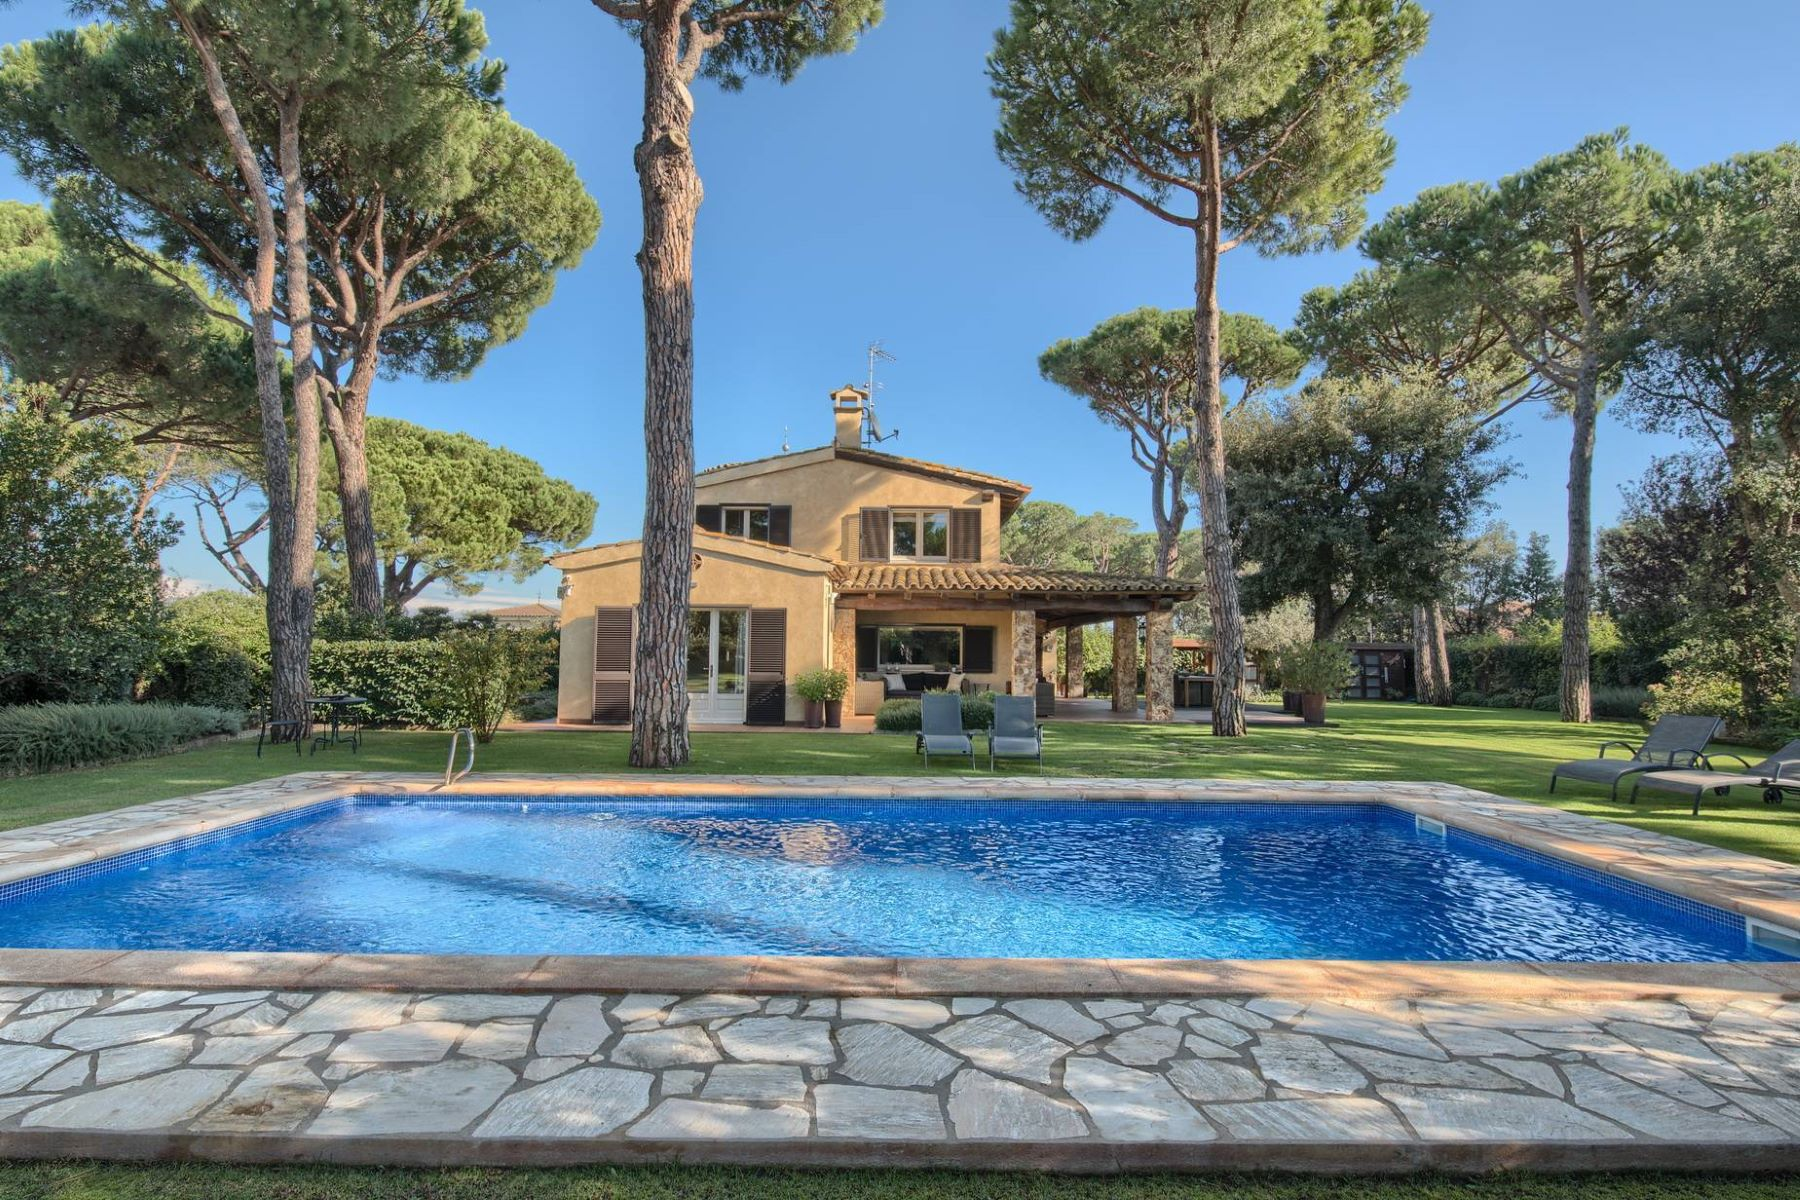 Single Family Home for Sale at Beautiful house on a large plot a few km from Es Castell beach Other Spain, Other Areas In Spain, 17001 Spain